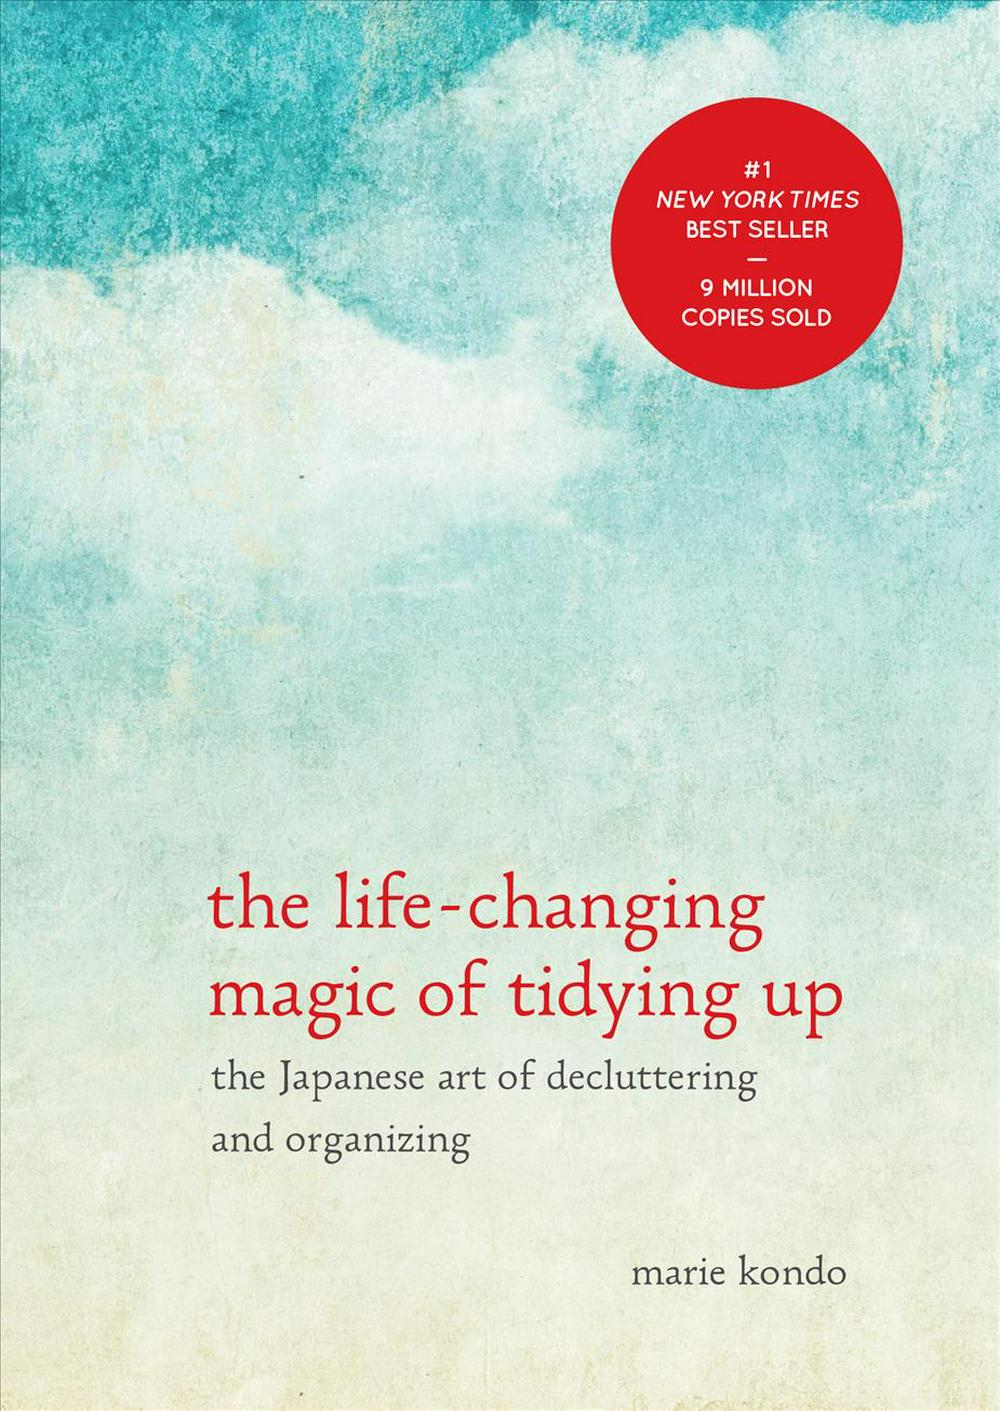 The Life-Changing Magic of Tidying Up: The Japanese Art of Decluttering and Organizing by Marie Kondo, ISBN: 9781607747307